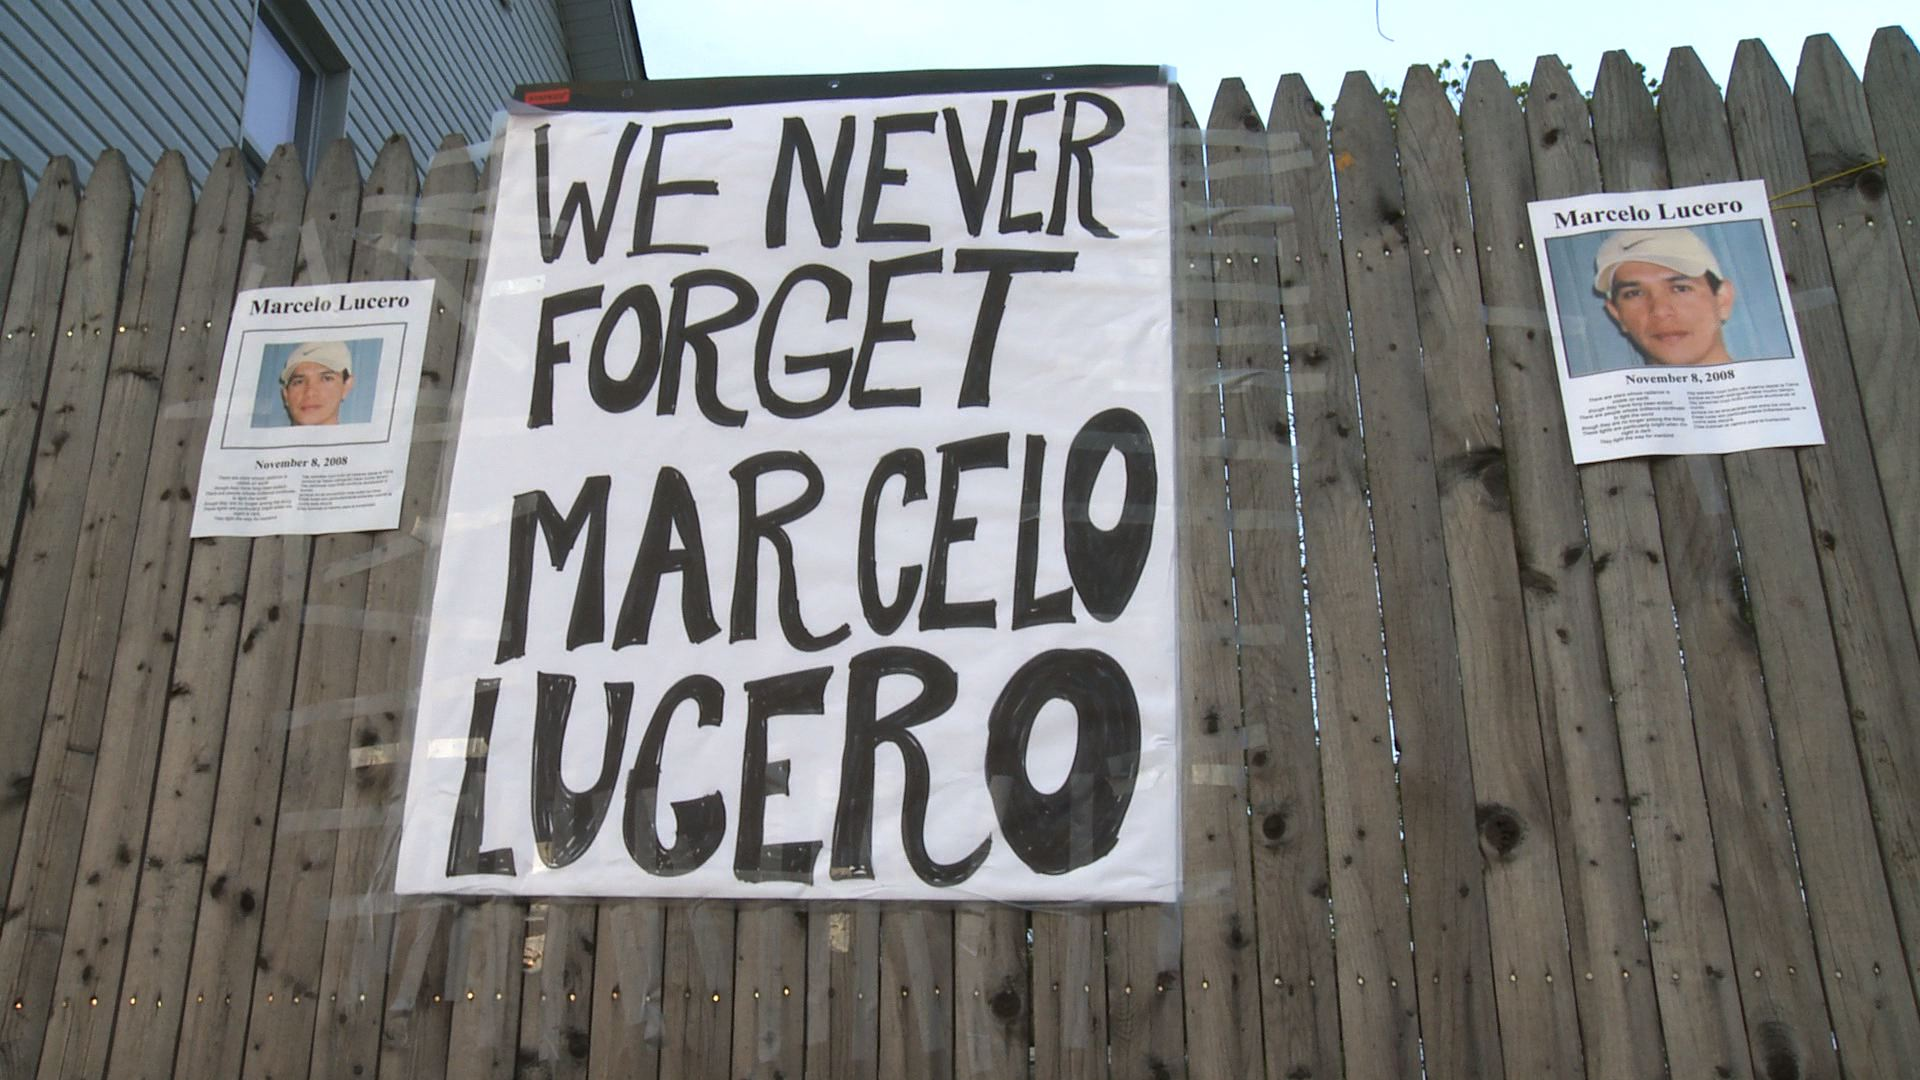 Marcelo Lucero, hate crime, anti-immigrant attack, Patchogue, New York